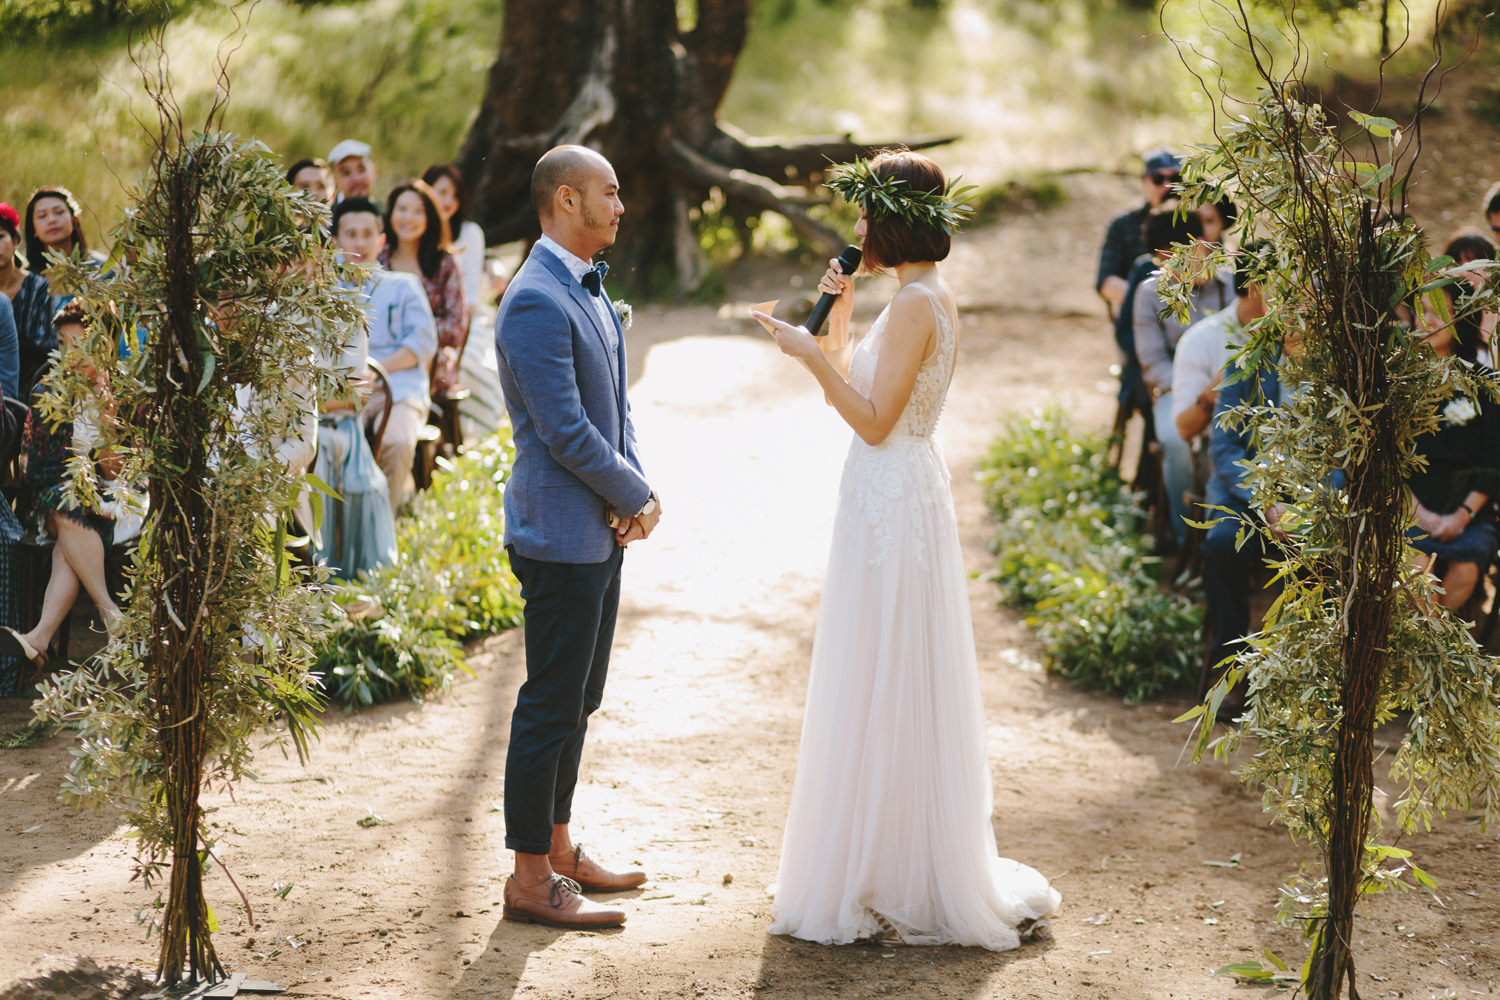 109-Barn_Wedding_Australia_Sam_Ting.jpg